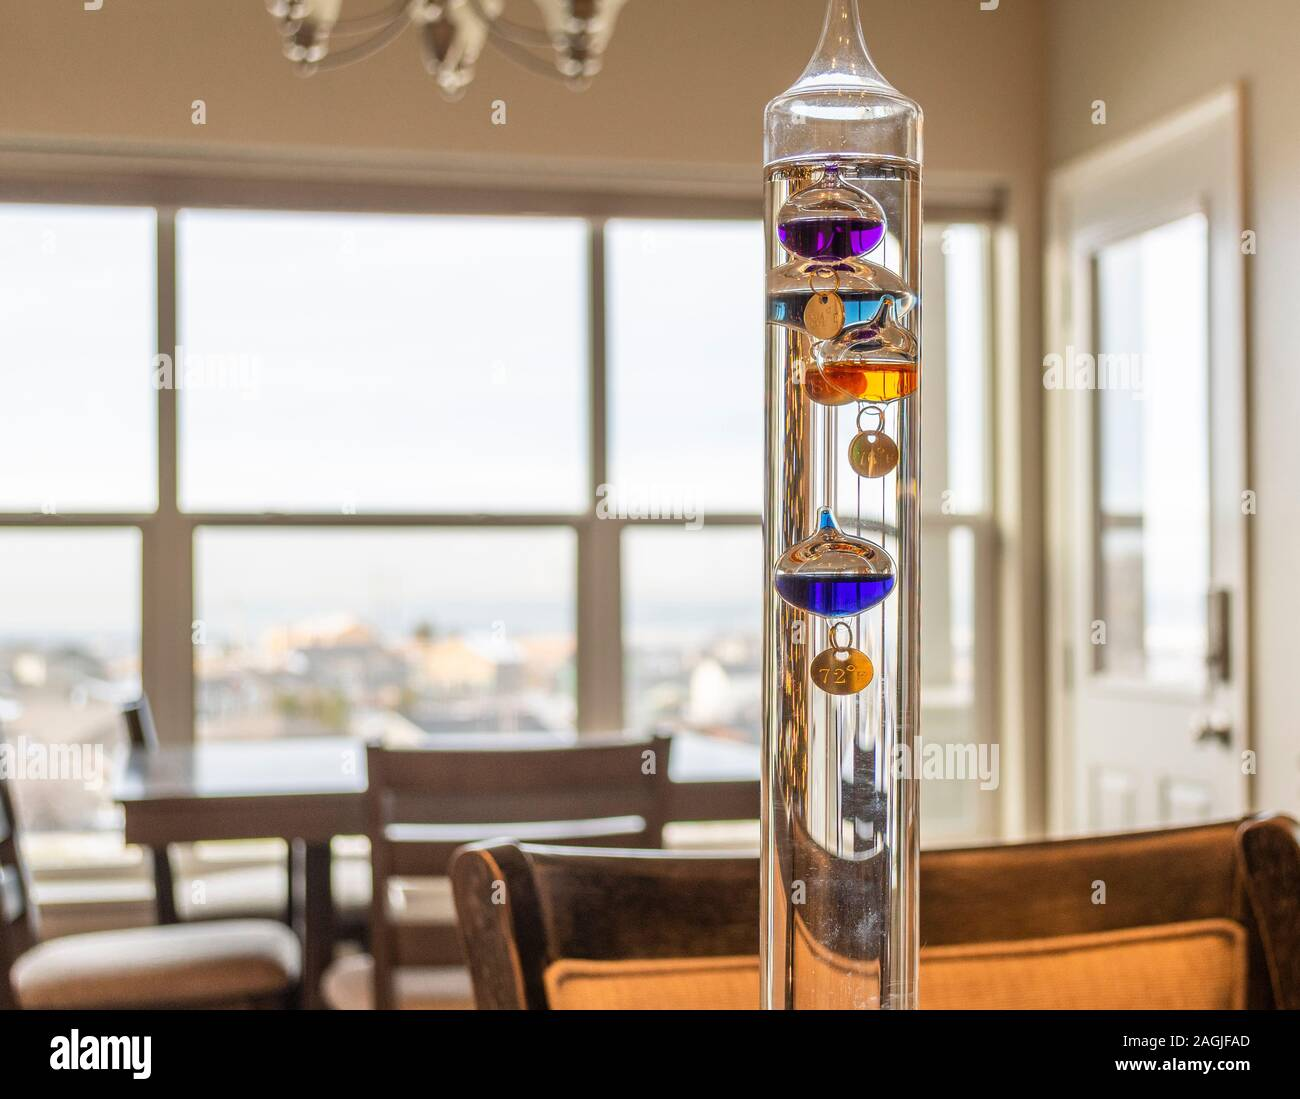 A colorful, glass, liquid filled Galileo Thermometer measures indoor temperature in a room with a view. Stock Photo